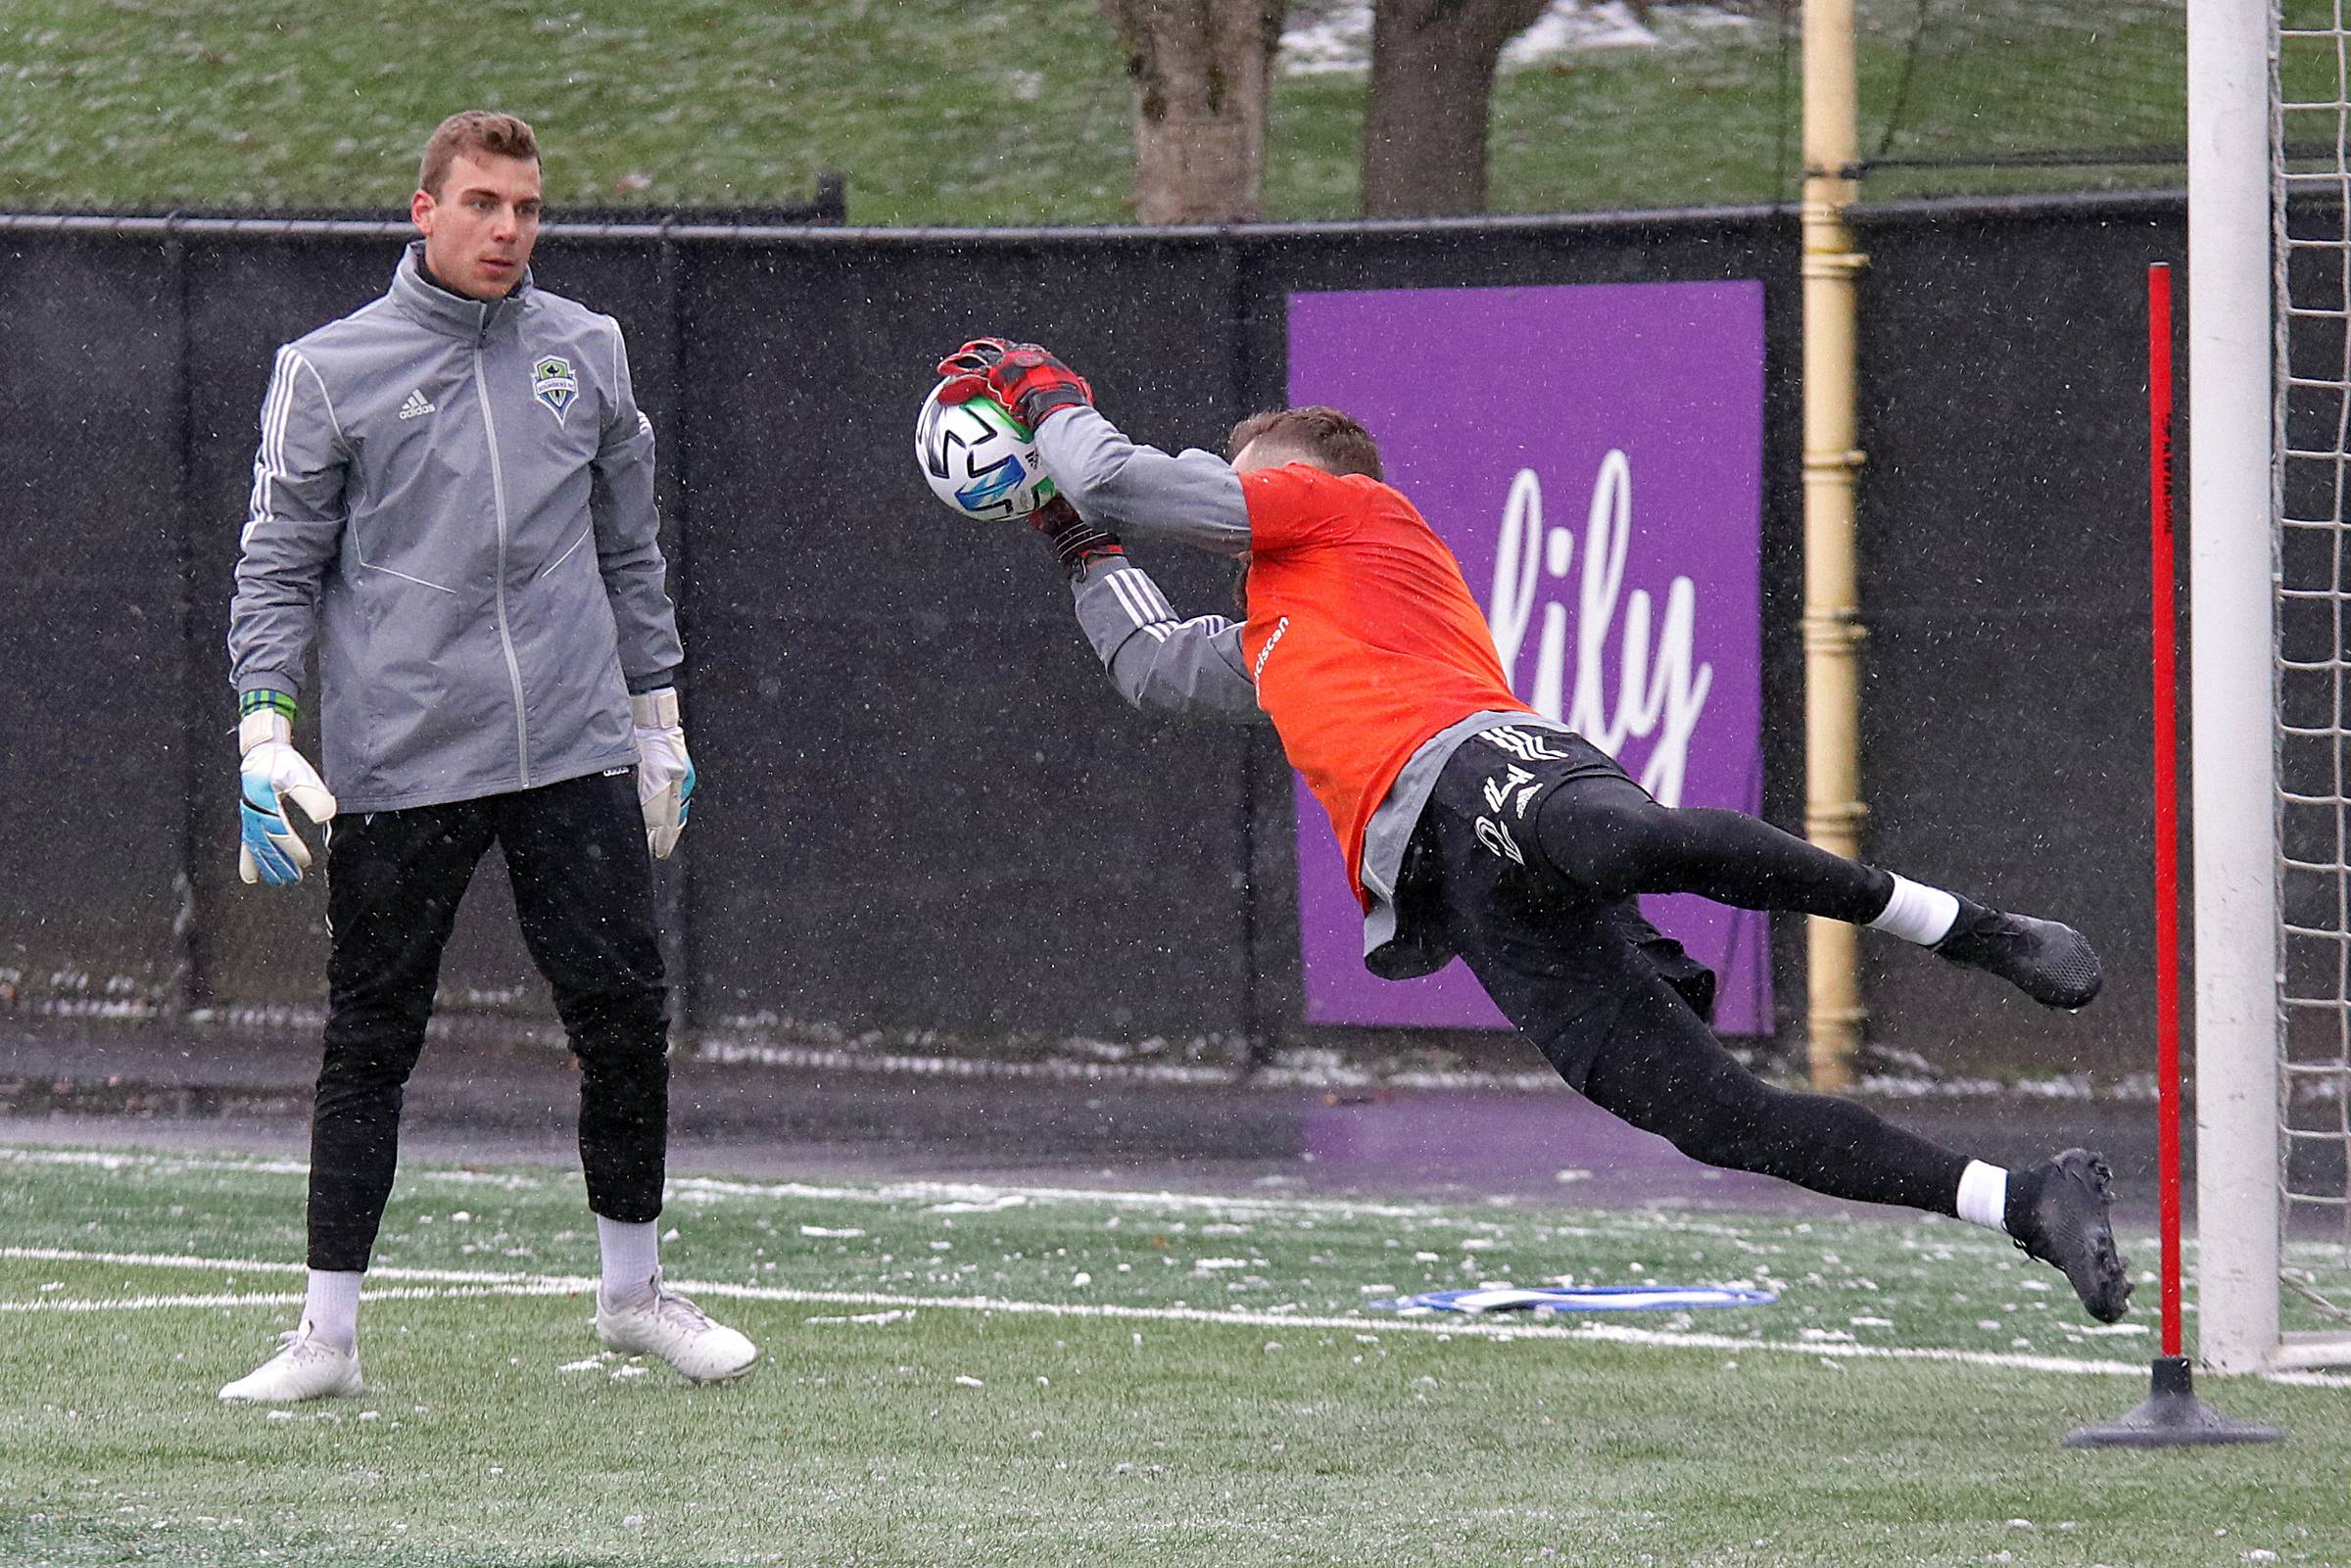 Goalie Stefan Frei (#24) demonstrates a diving save during the first practice of the 2020 season